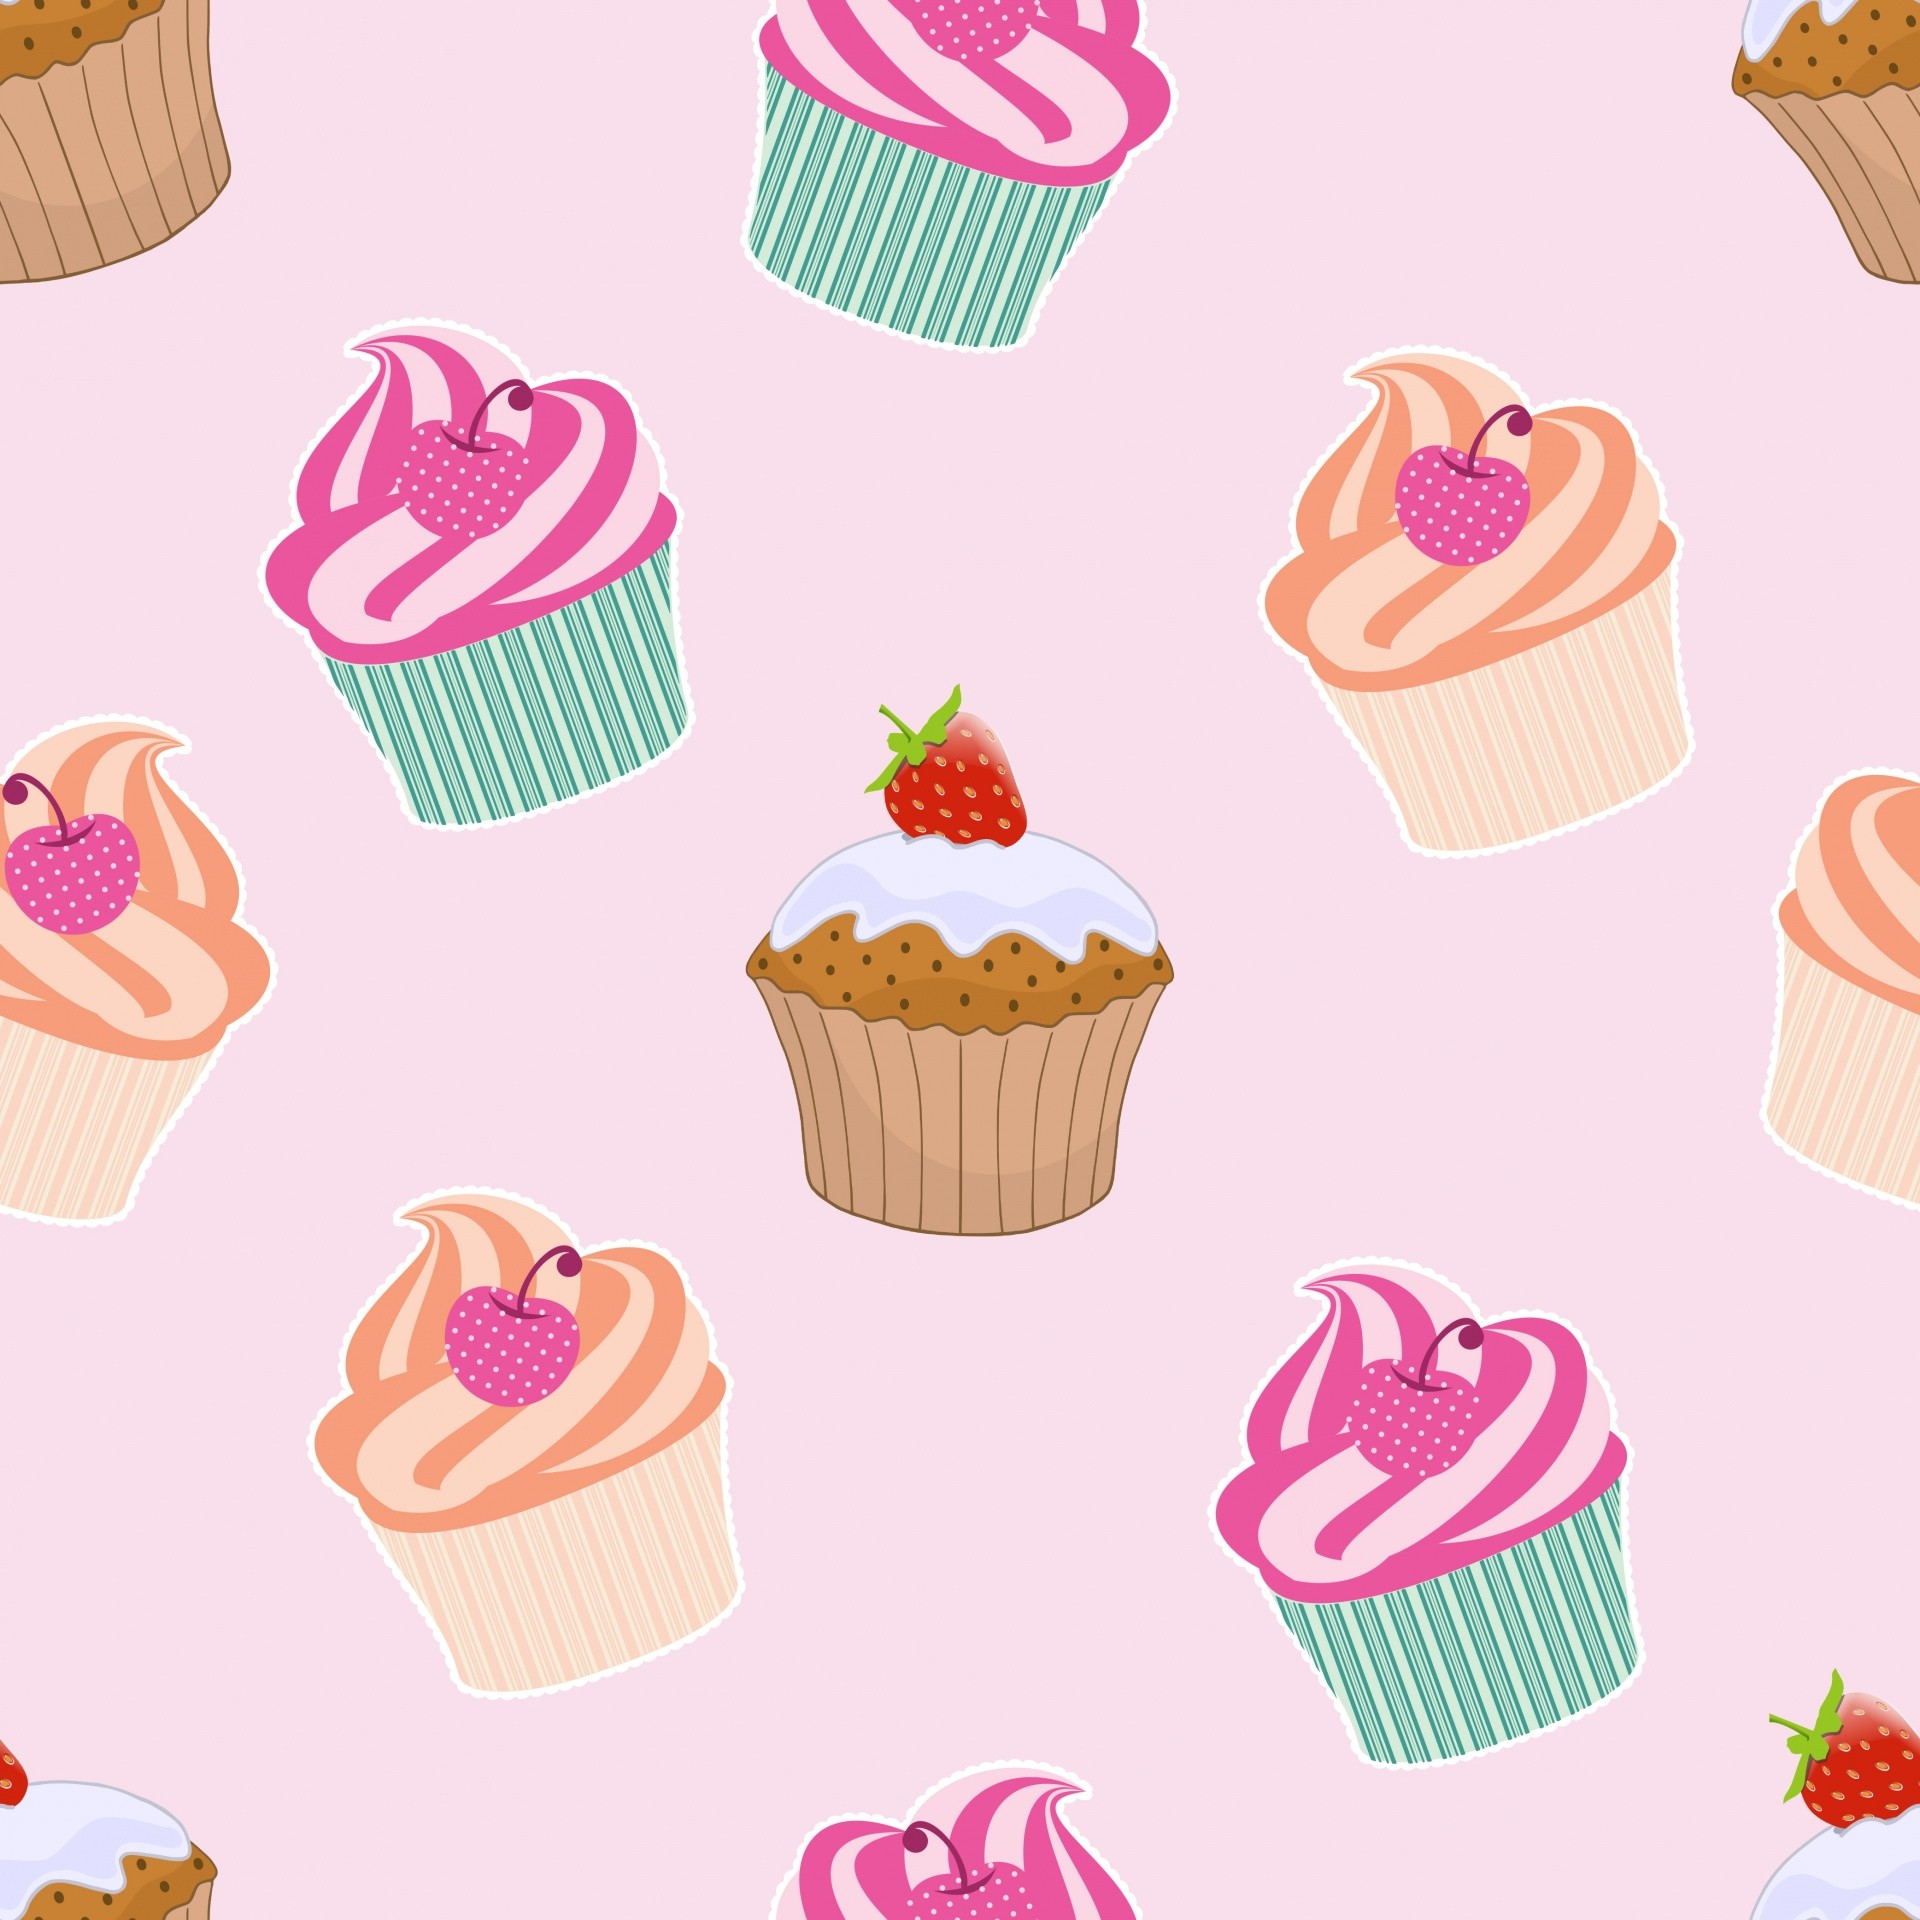 Cupcakes And Muffins Wallpaper Download Widescreen